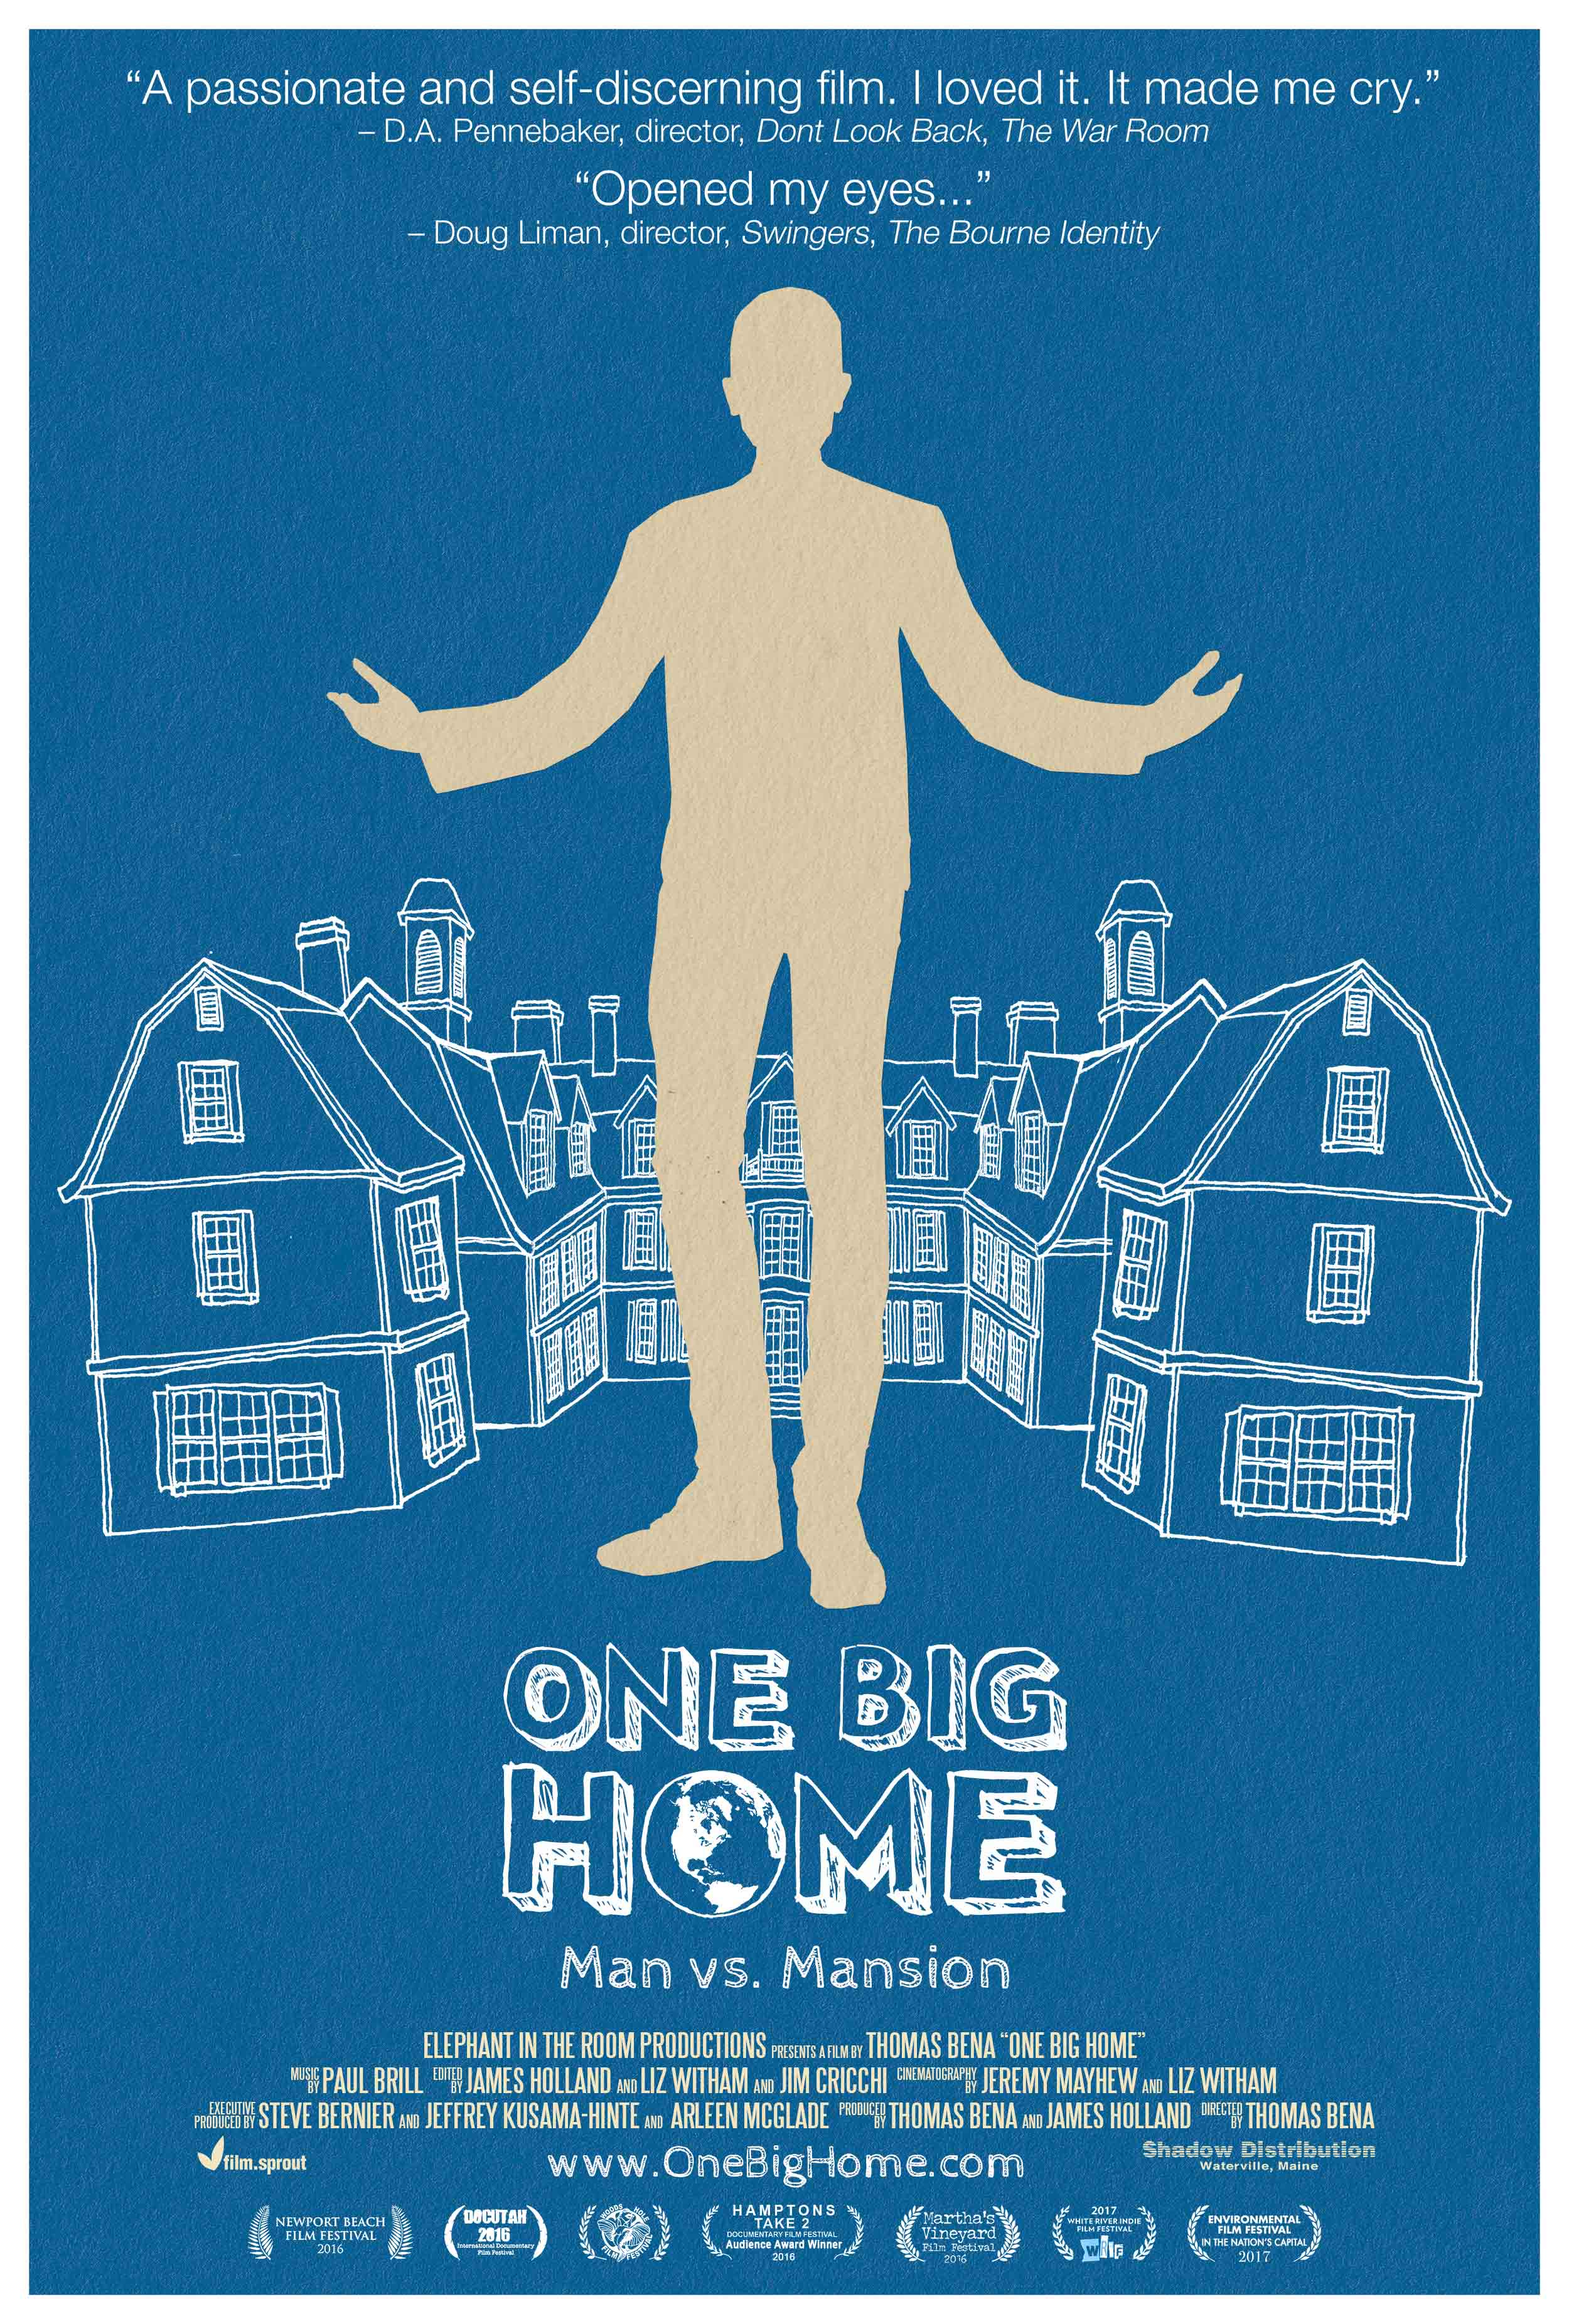 One Big Home Event 11/12 at 5 PM. REGISTER HERE